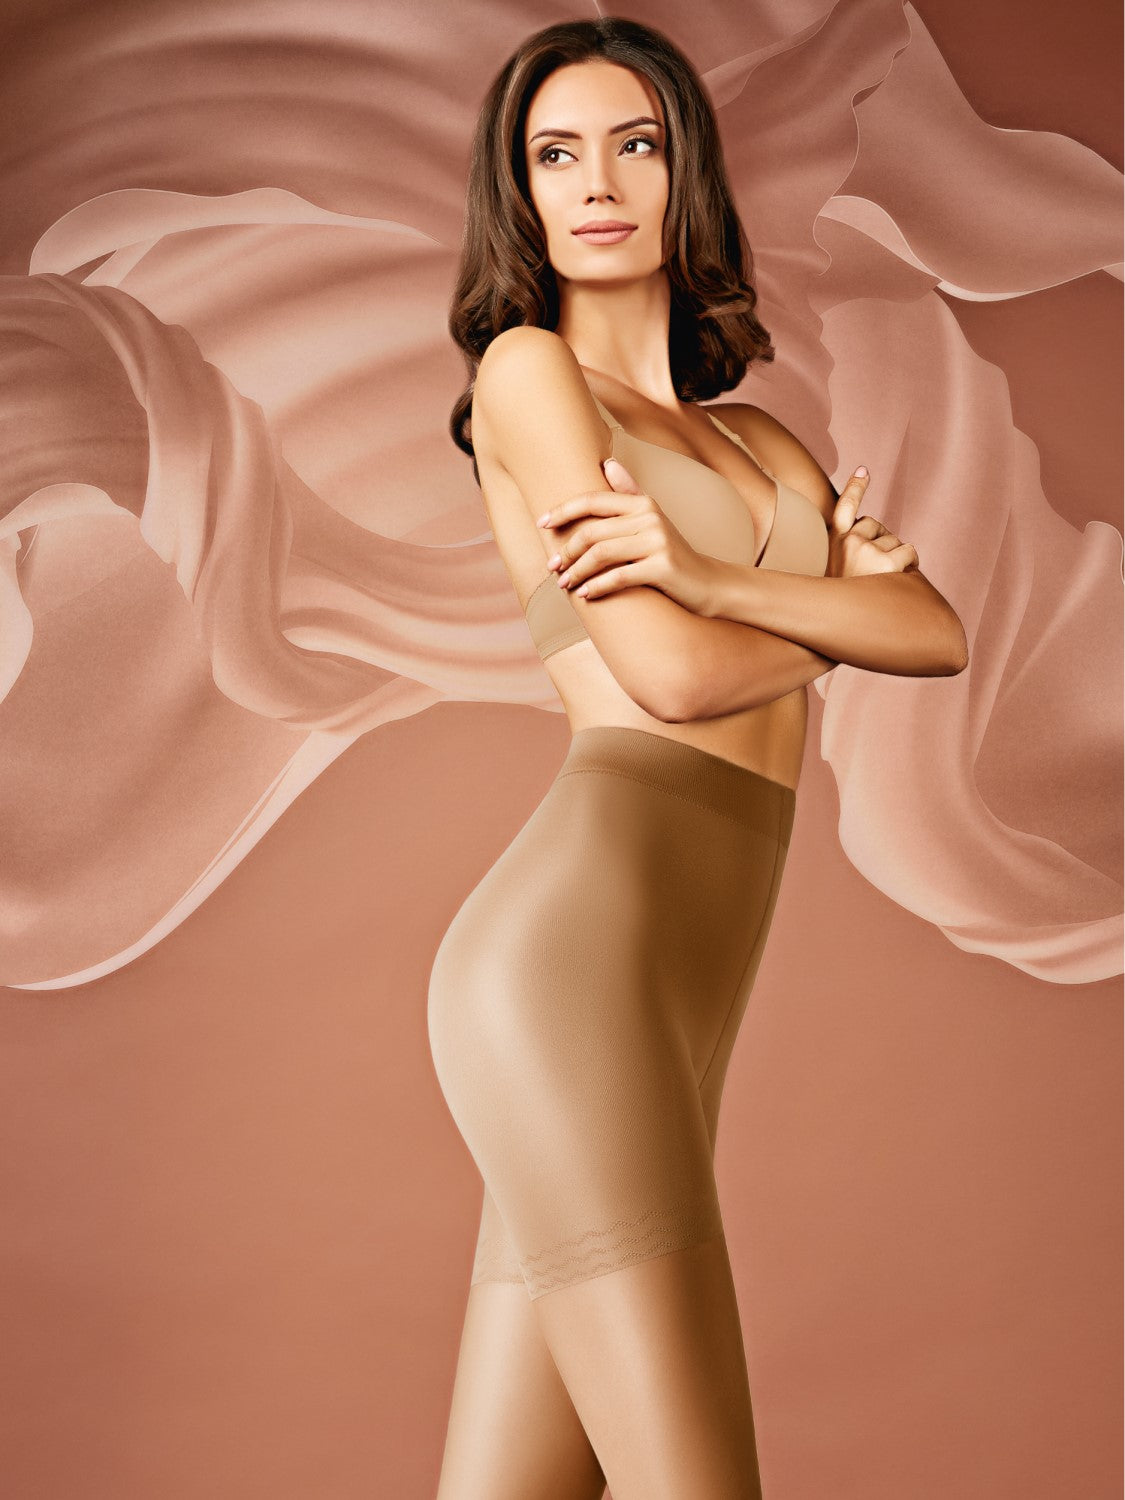 sofsy High Waisted Slimming Tights For Women 30 Den Shaping Semi Sheer Pantyhose Made in Italy